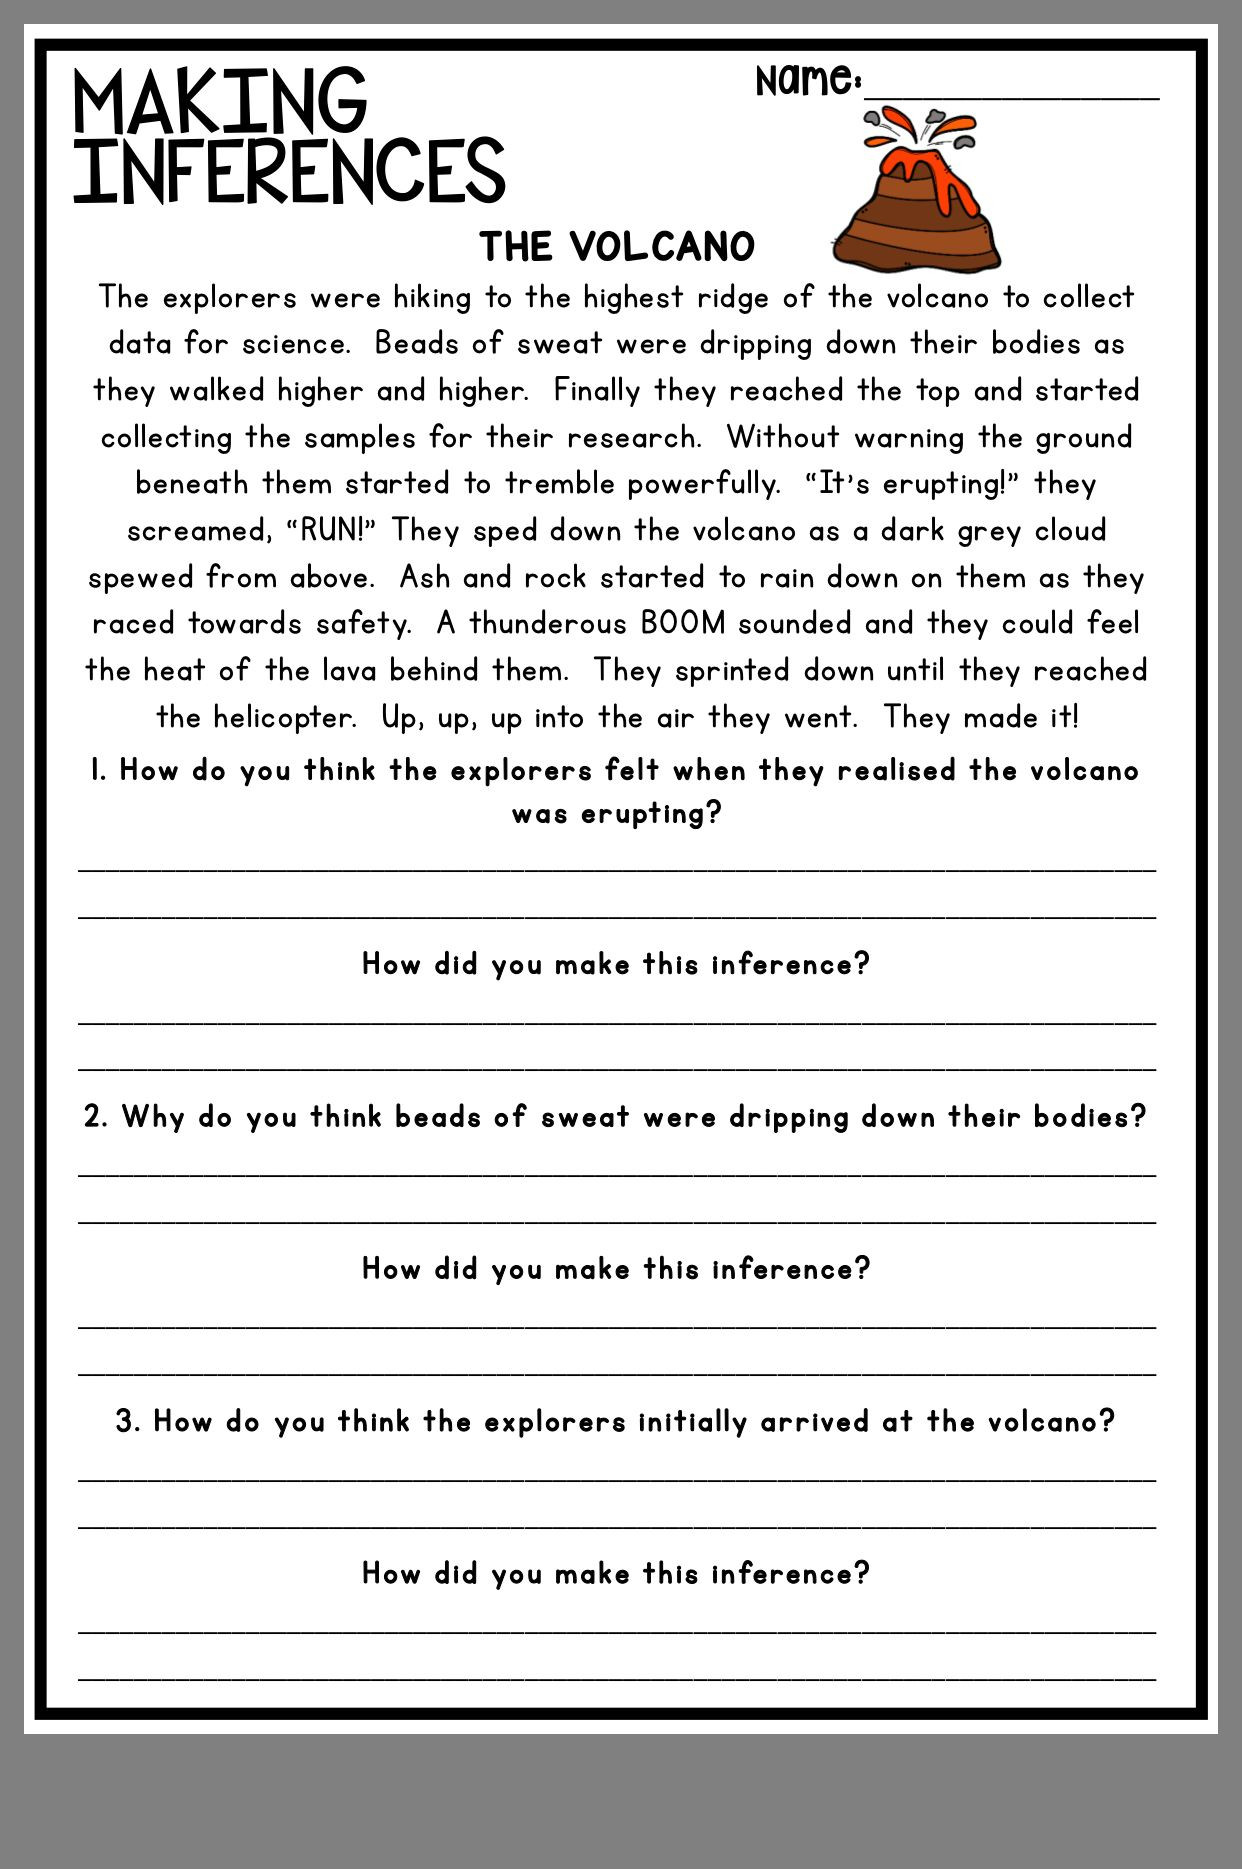 Making Inferences Worksheets 4th Grade Pin by Audrey C On A Teacher S Best Ideas